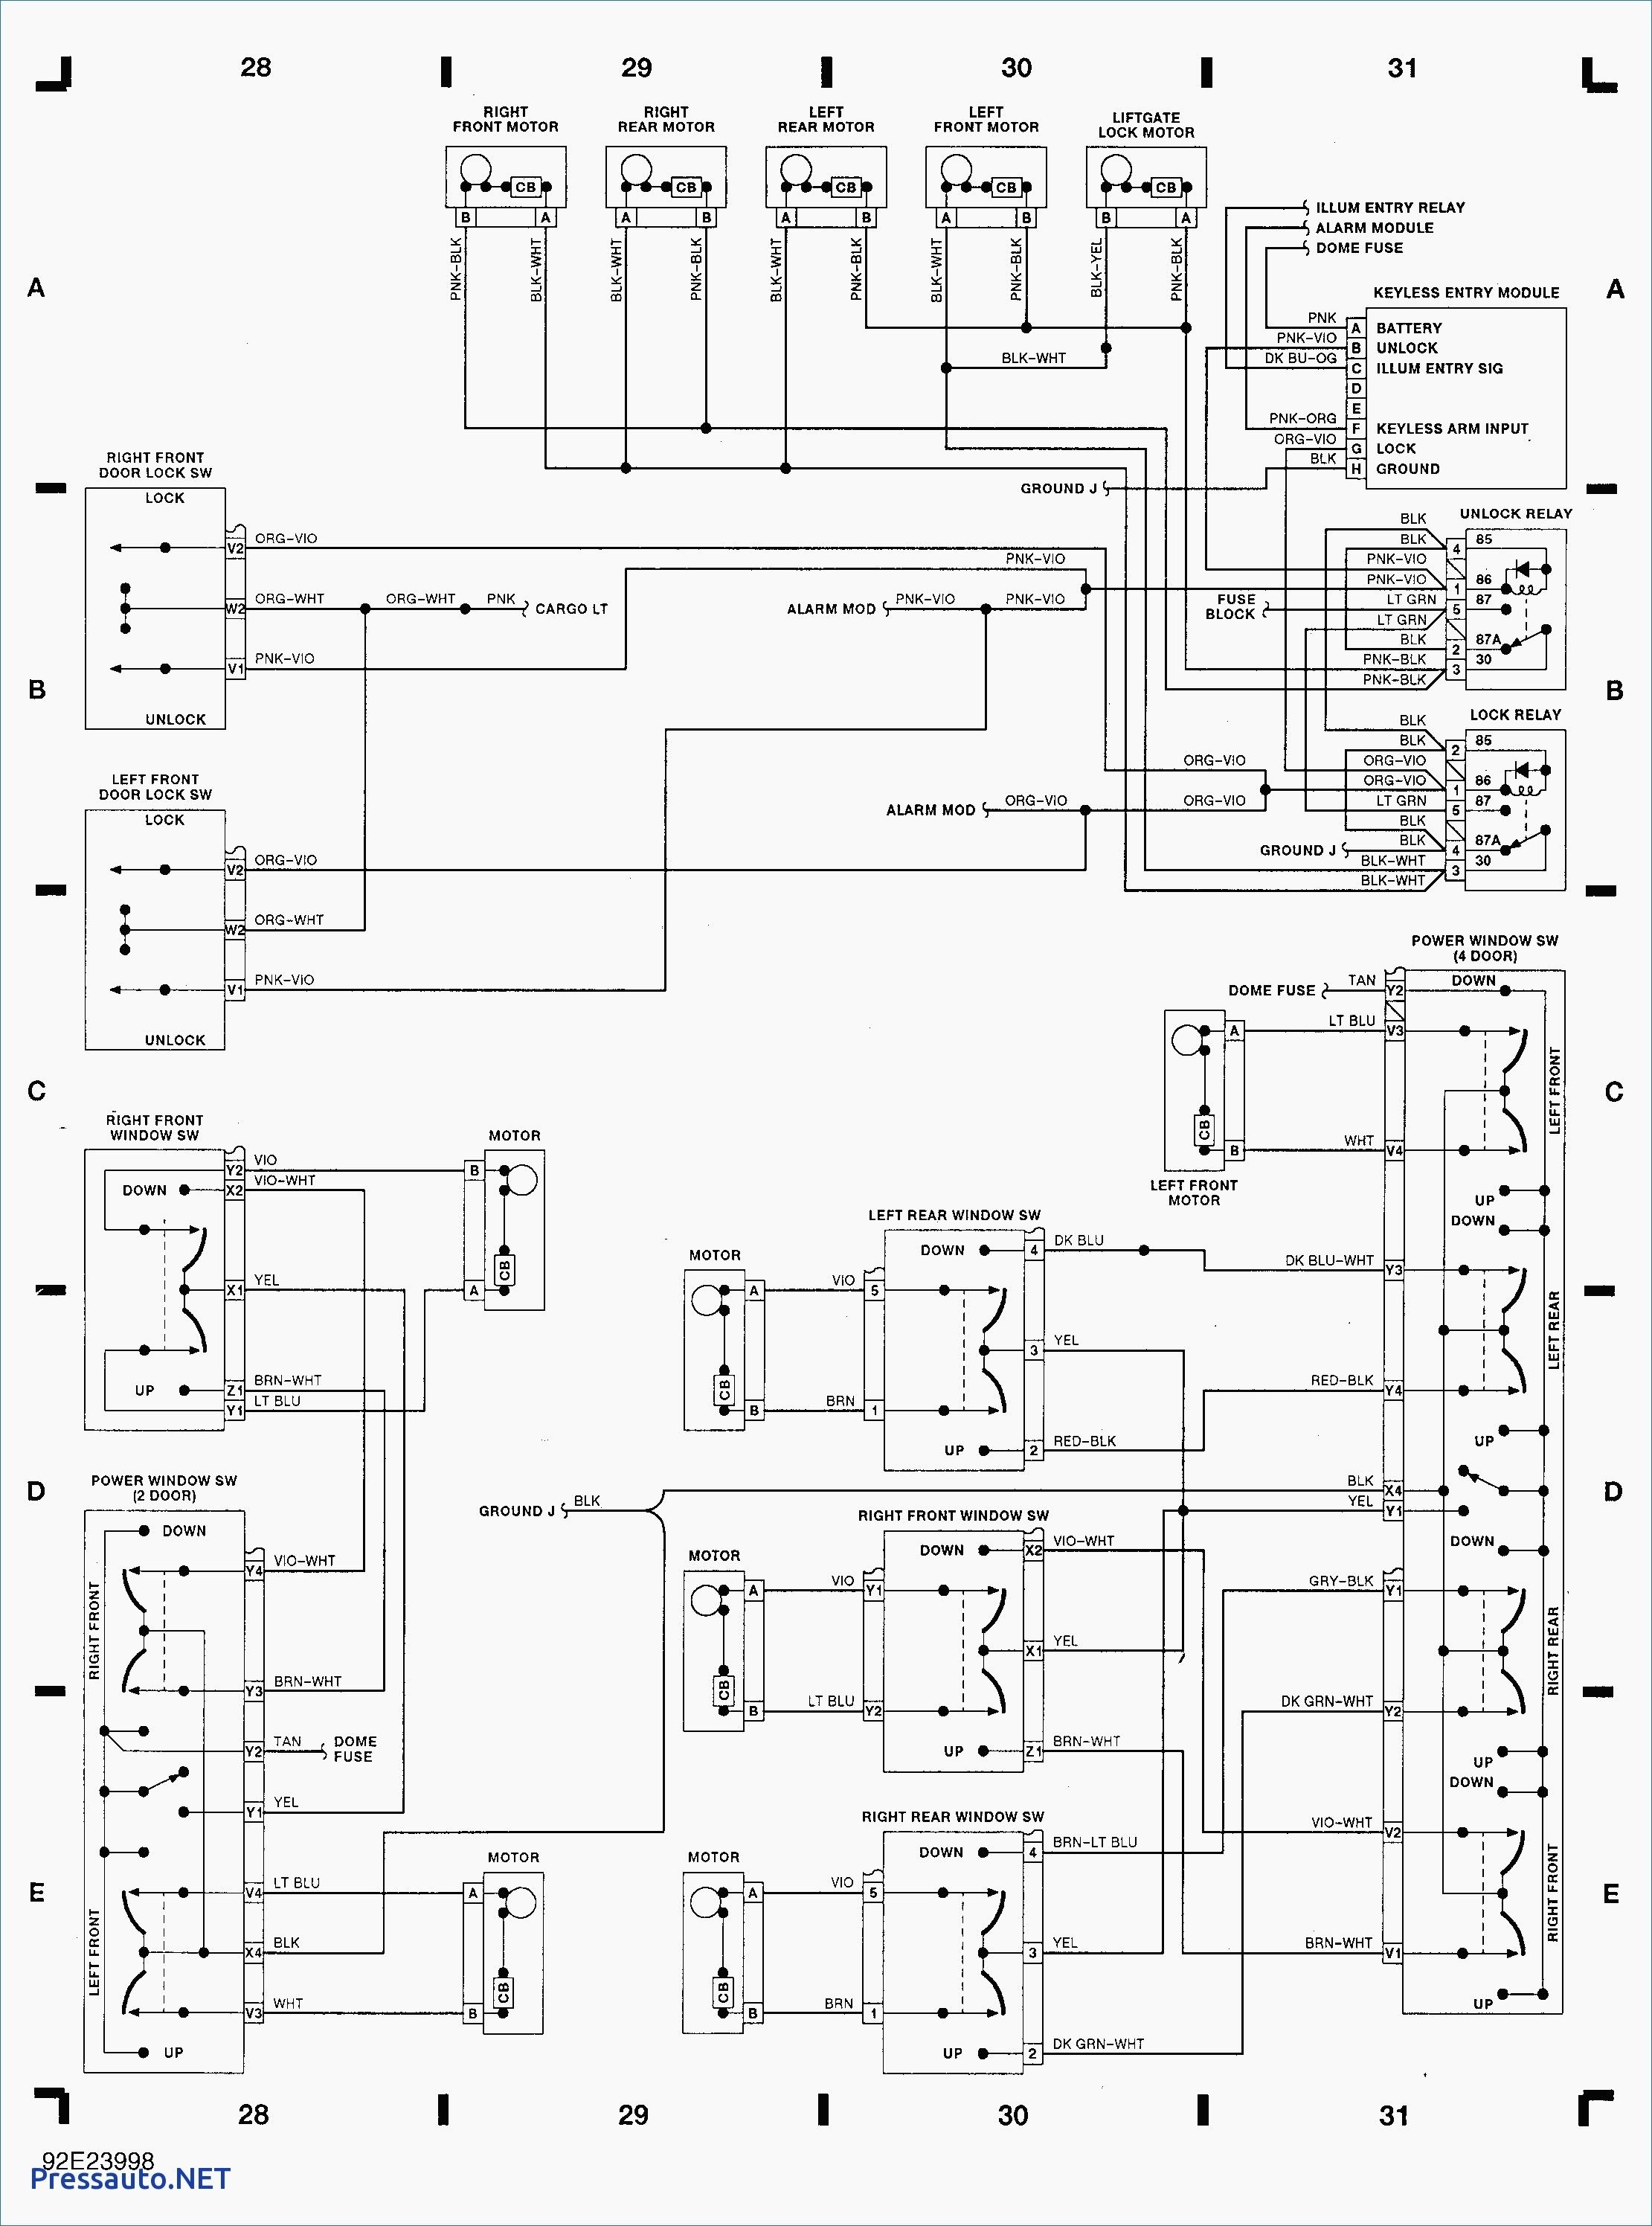 Inspirational Morris Minor Wiring Diagram With Alternator Diagrams Digramssample Diagramimages Wiringdiagramsample Wiringd Morris Minor Alternator Diagram